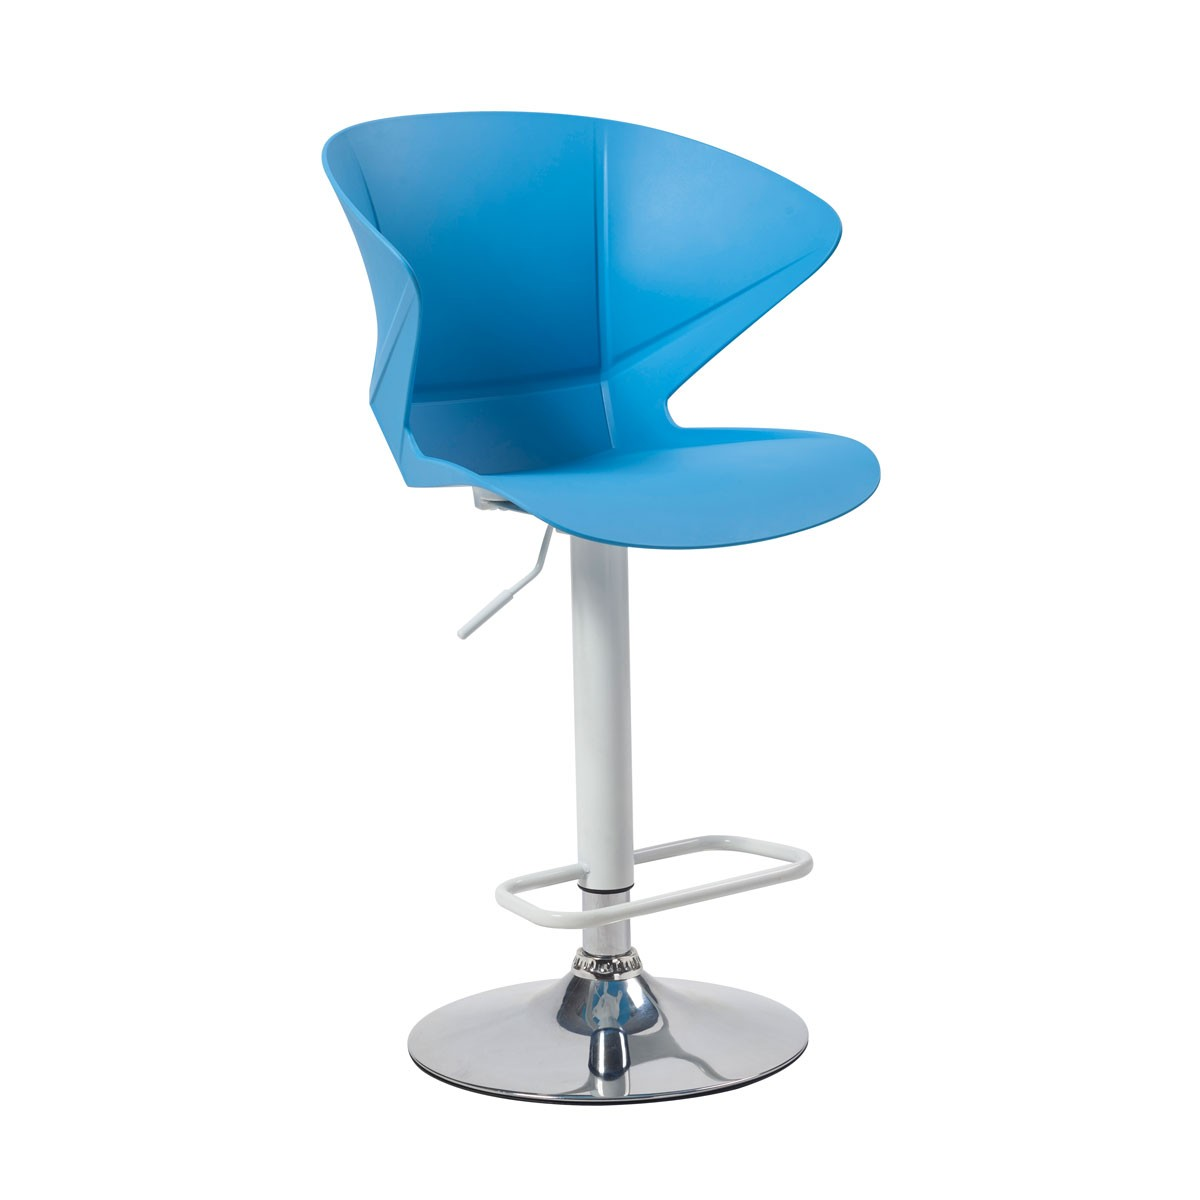 Adjustable Height Swivel Bar Stool with Round Base - (YMG-9802)